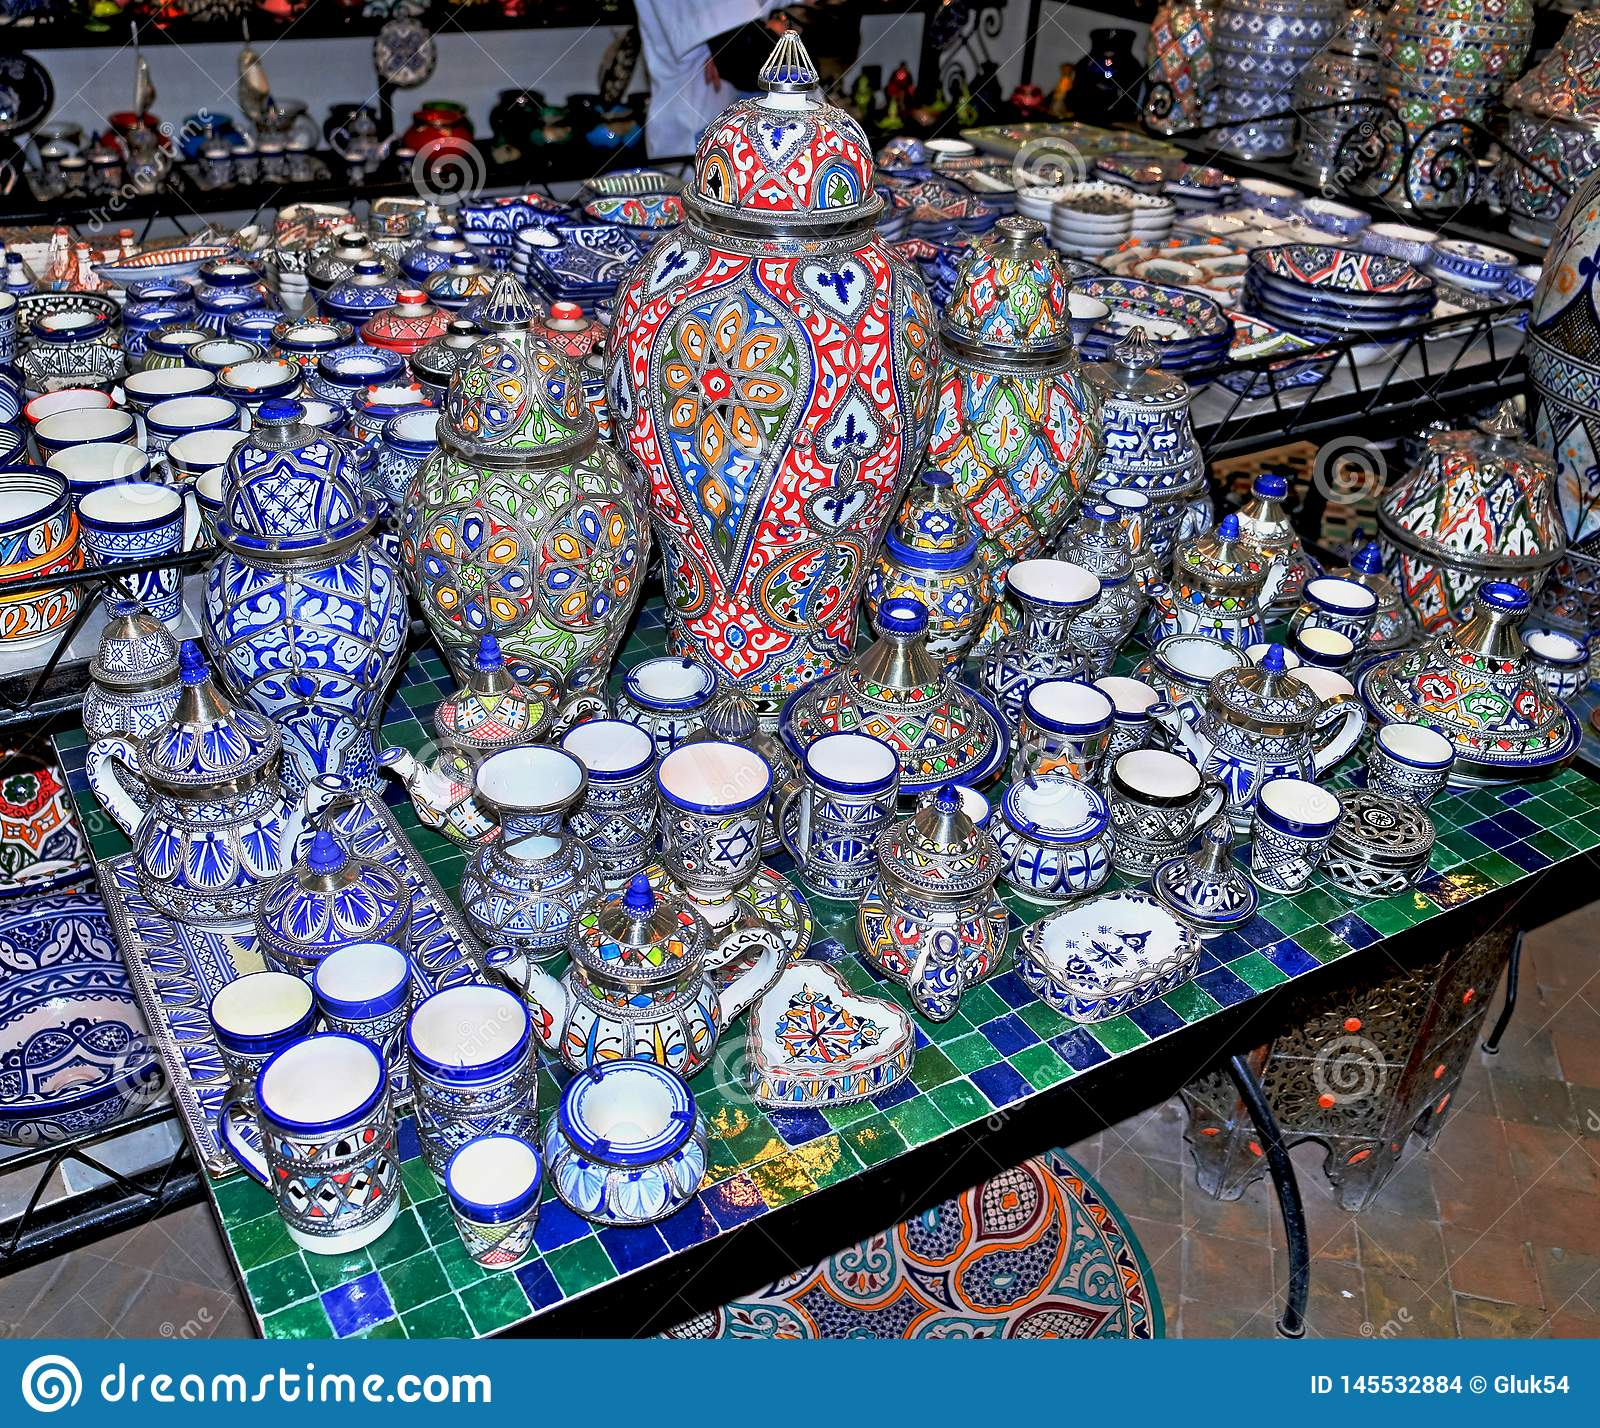 Ceramic dishes and other ceramic products made by Moroccan craftsmen by hand